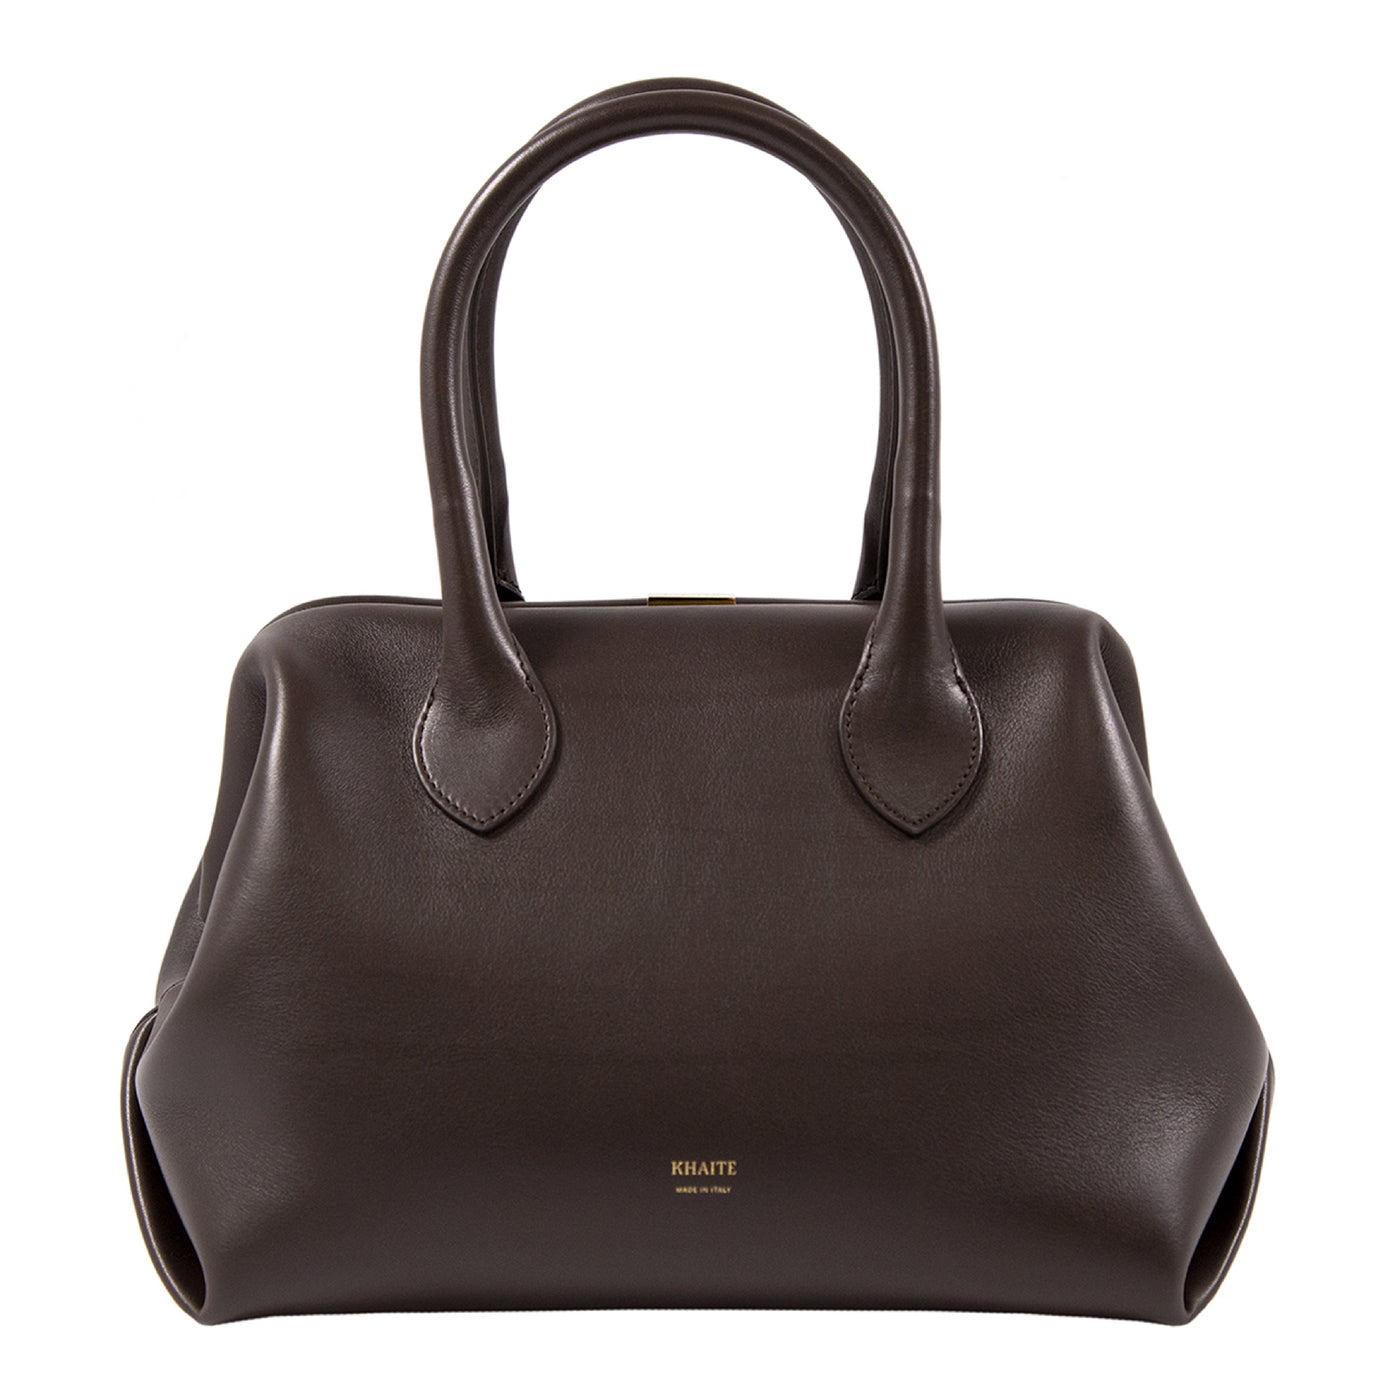 Load image into Gallery viewer, KHAITE SMALL DOCTOR BAG BROWN